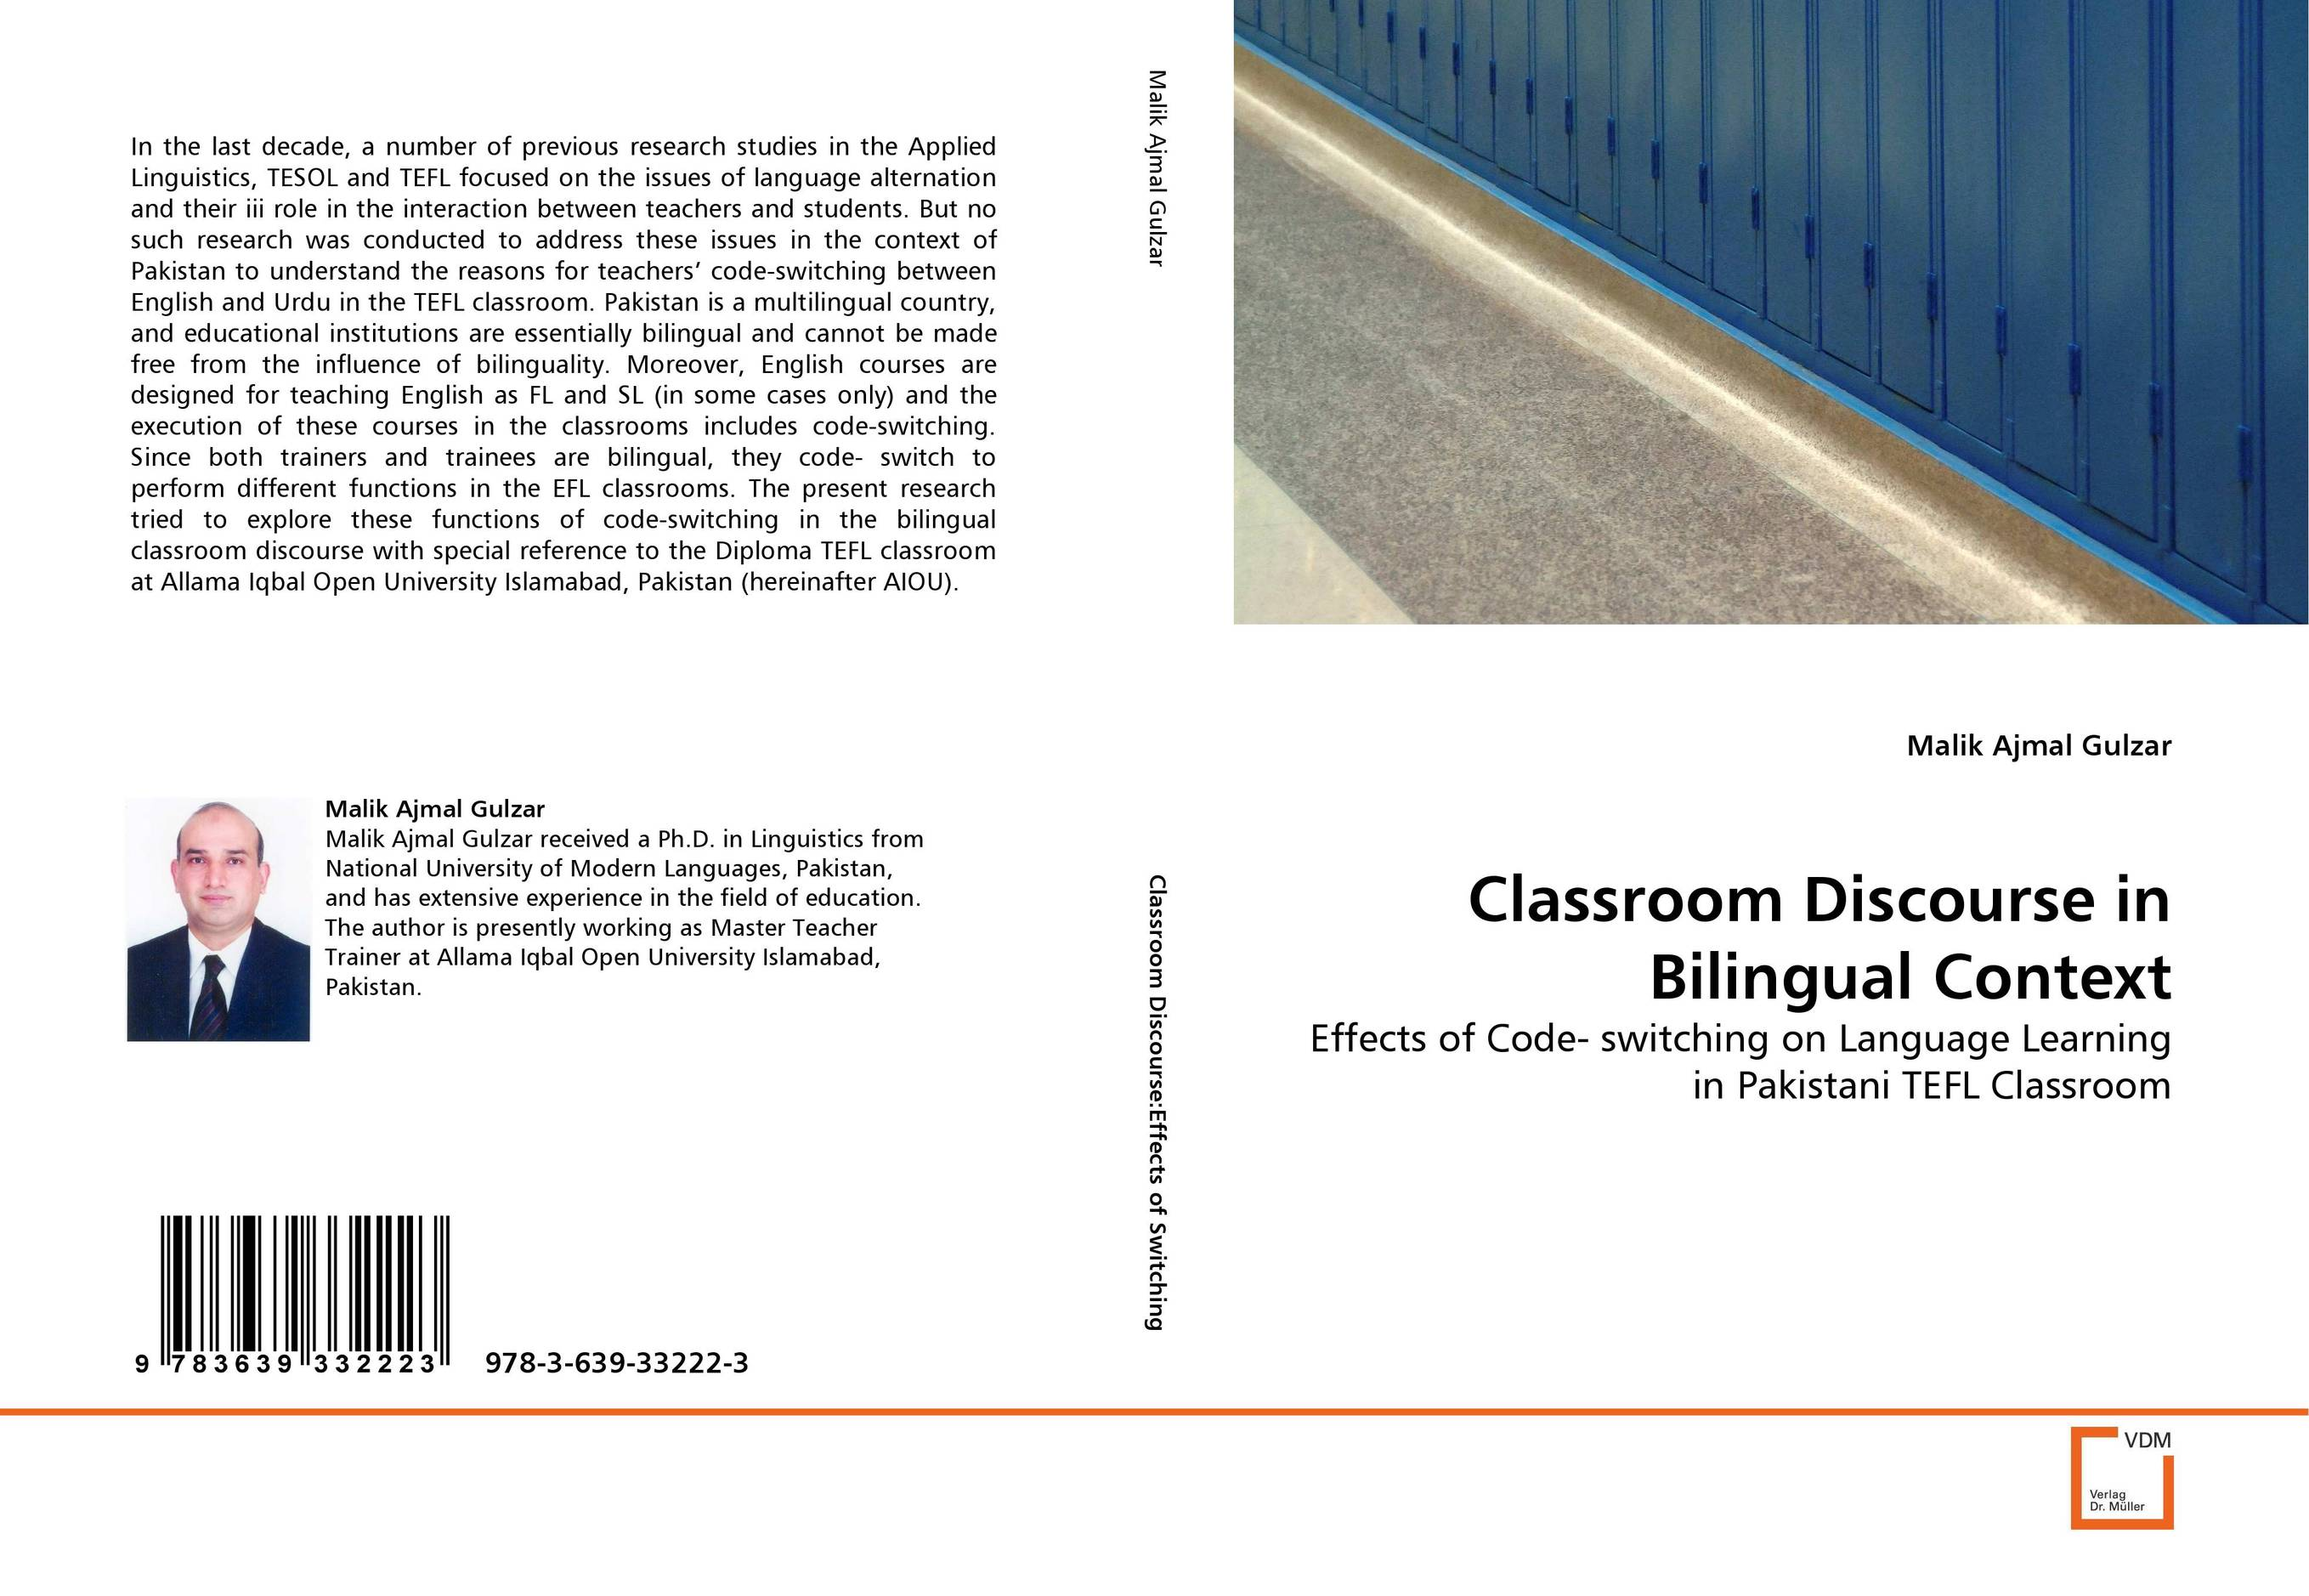 Classroom Discourse in Bilingual Context glynn s hughes handbook of classroom english